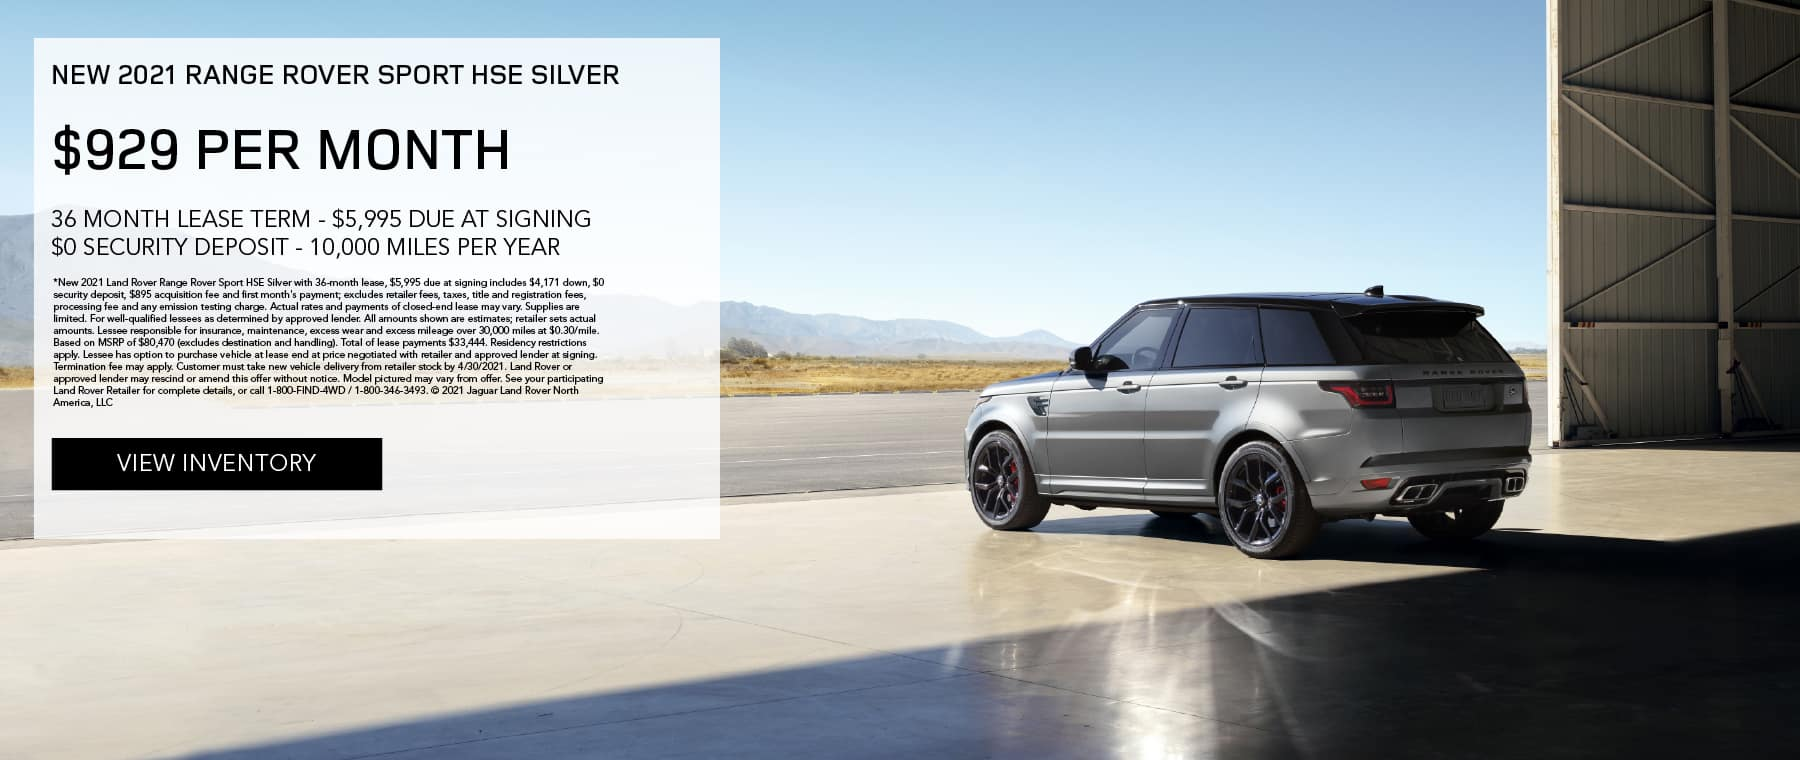 NEW 2021 RANGE ROVER SPORT HSE SILVER. $929 PER MONTH. 36 MONTH LEASE TERM. $5,995 CASH DUE AT SIGNING. $0 SECURITY DEPOSIT. 10,000 MILES PER YEAR. EXCLUDES RETAILER FEES, TAXES, TITLE AND REGISTRATION FEES, PROCESSING FEE AND ANY EMISSION TESTING CHARGE. ENDS 4/30/2021. VIEW INVENTORY. SILVER RANGE ROVER SPORT PARKED IN AIRPLANE HANGER.